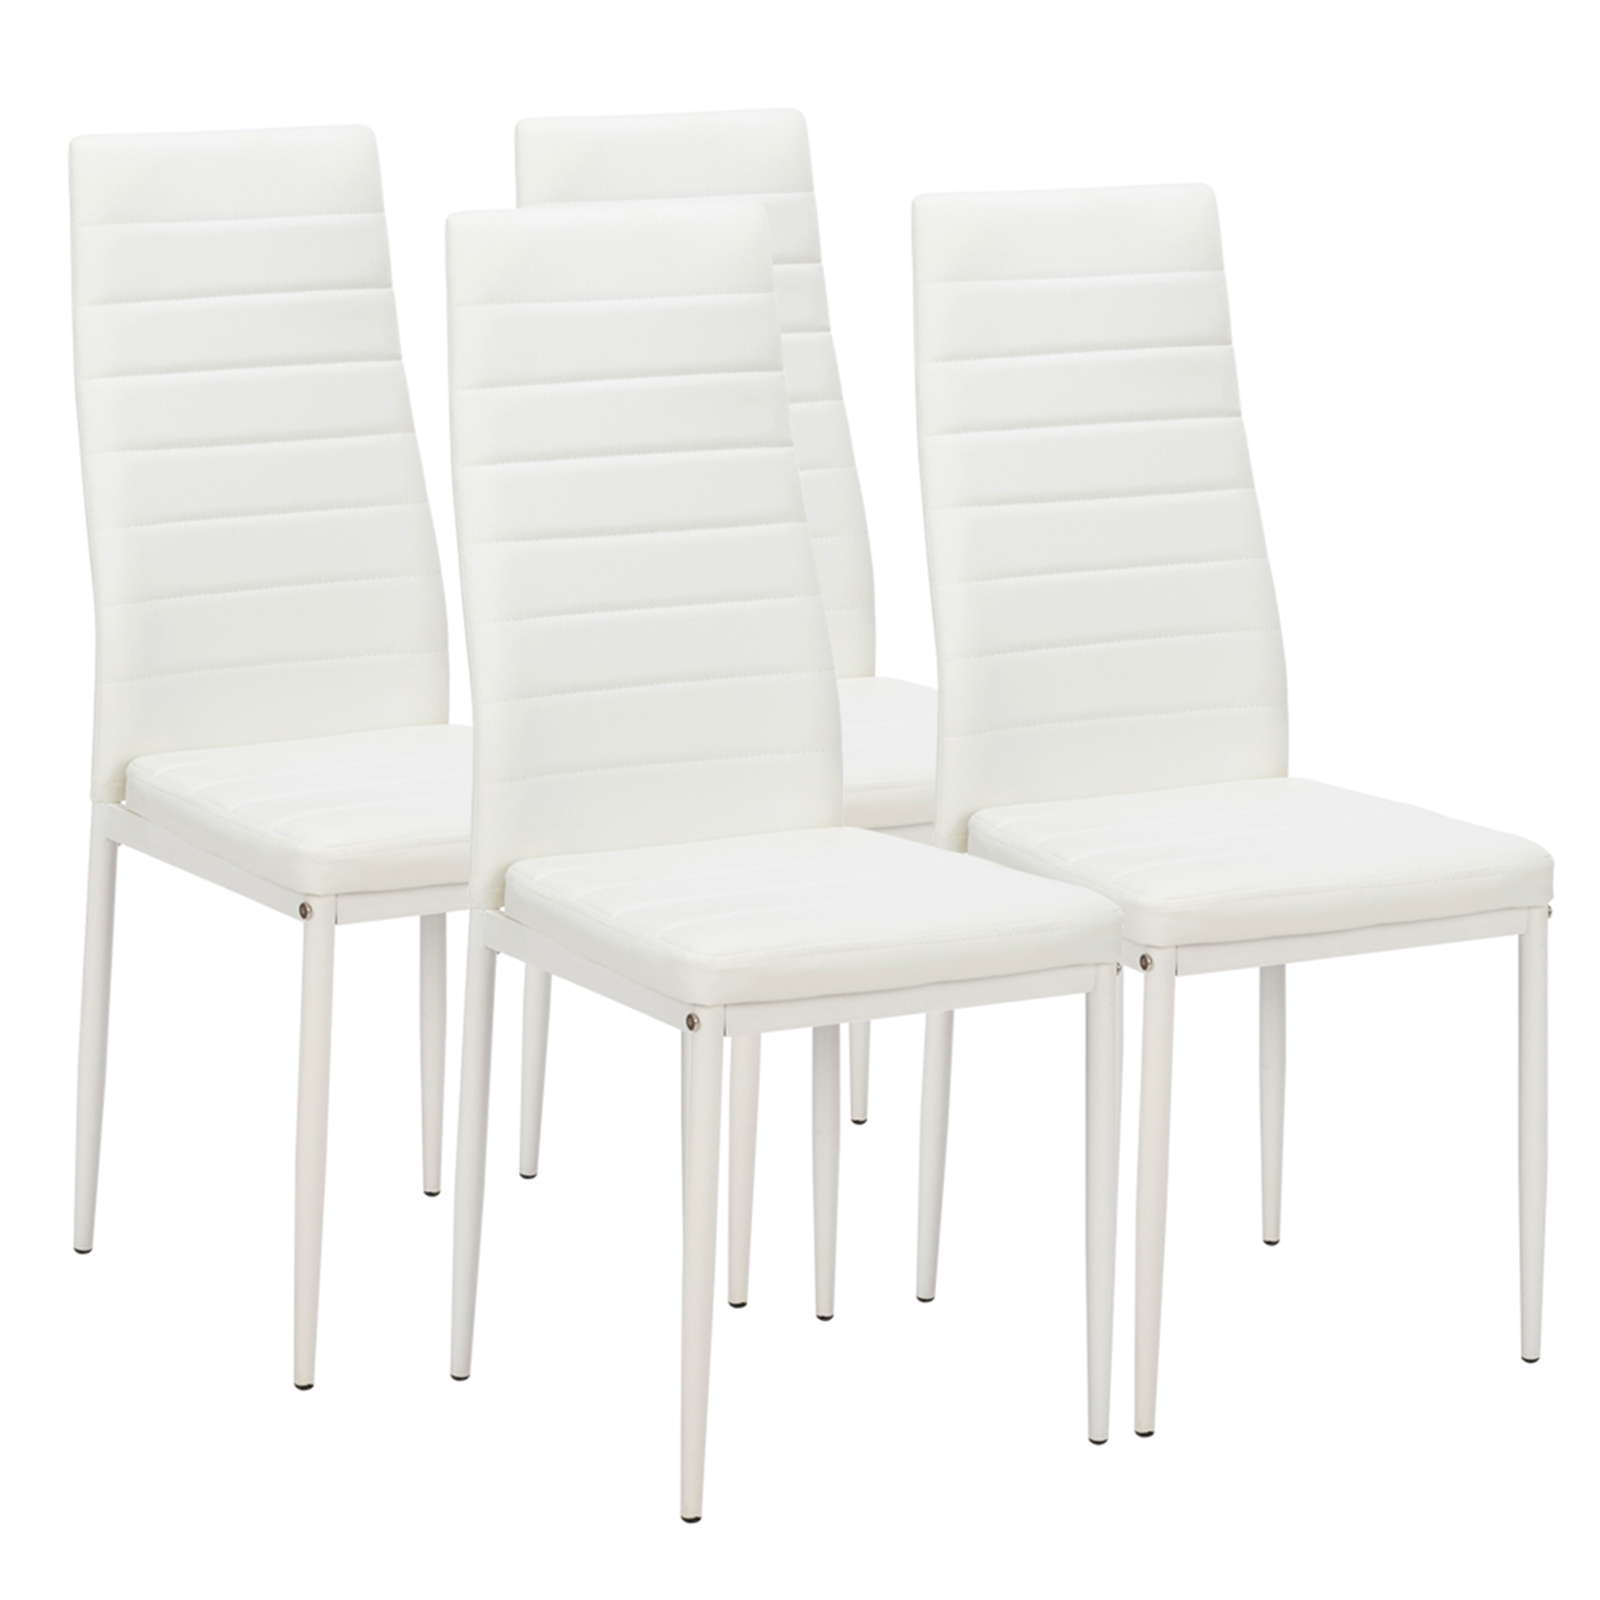 4pcs Elegant Assembled Stripping Texture High Backrest Dining Chairs White